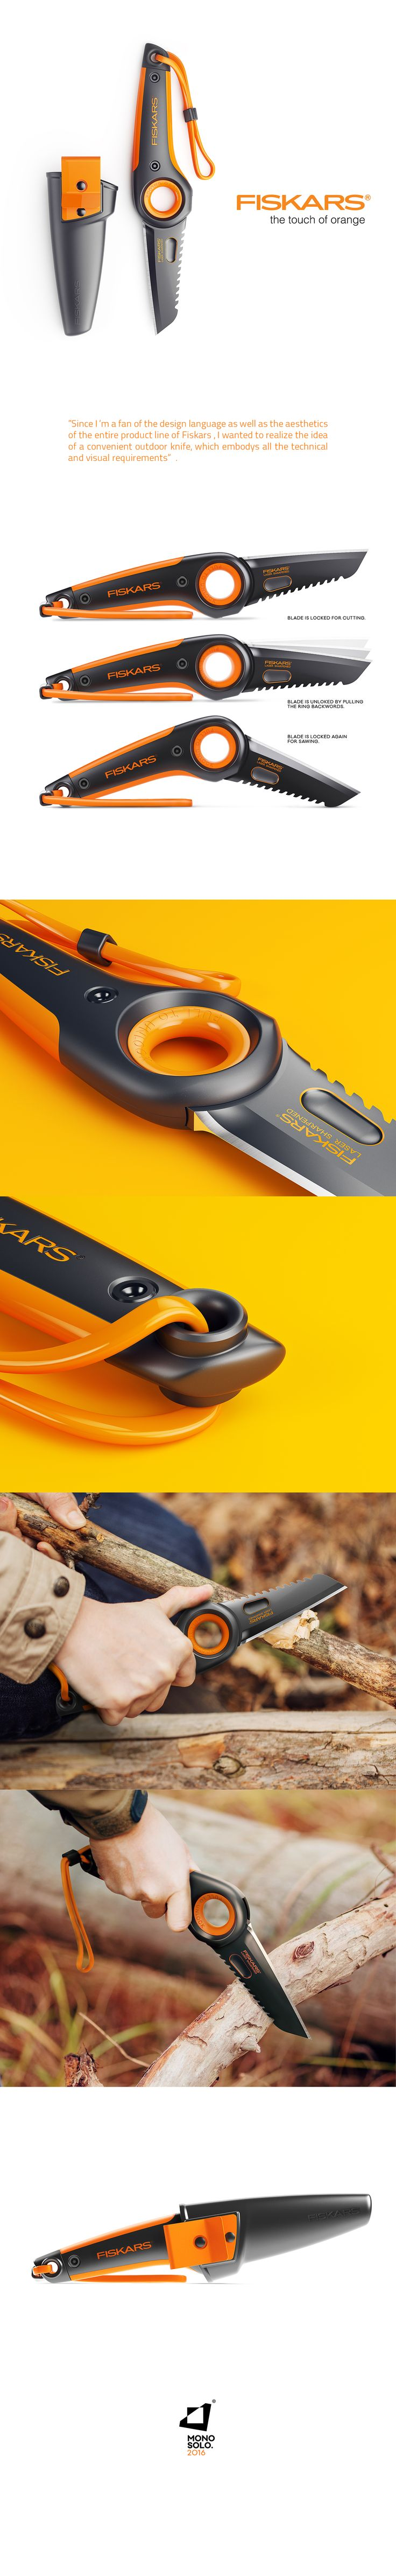 FISKARS OUTDOOR KNIFE on Behance